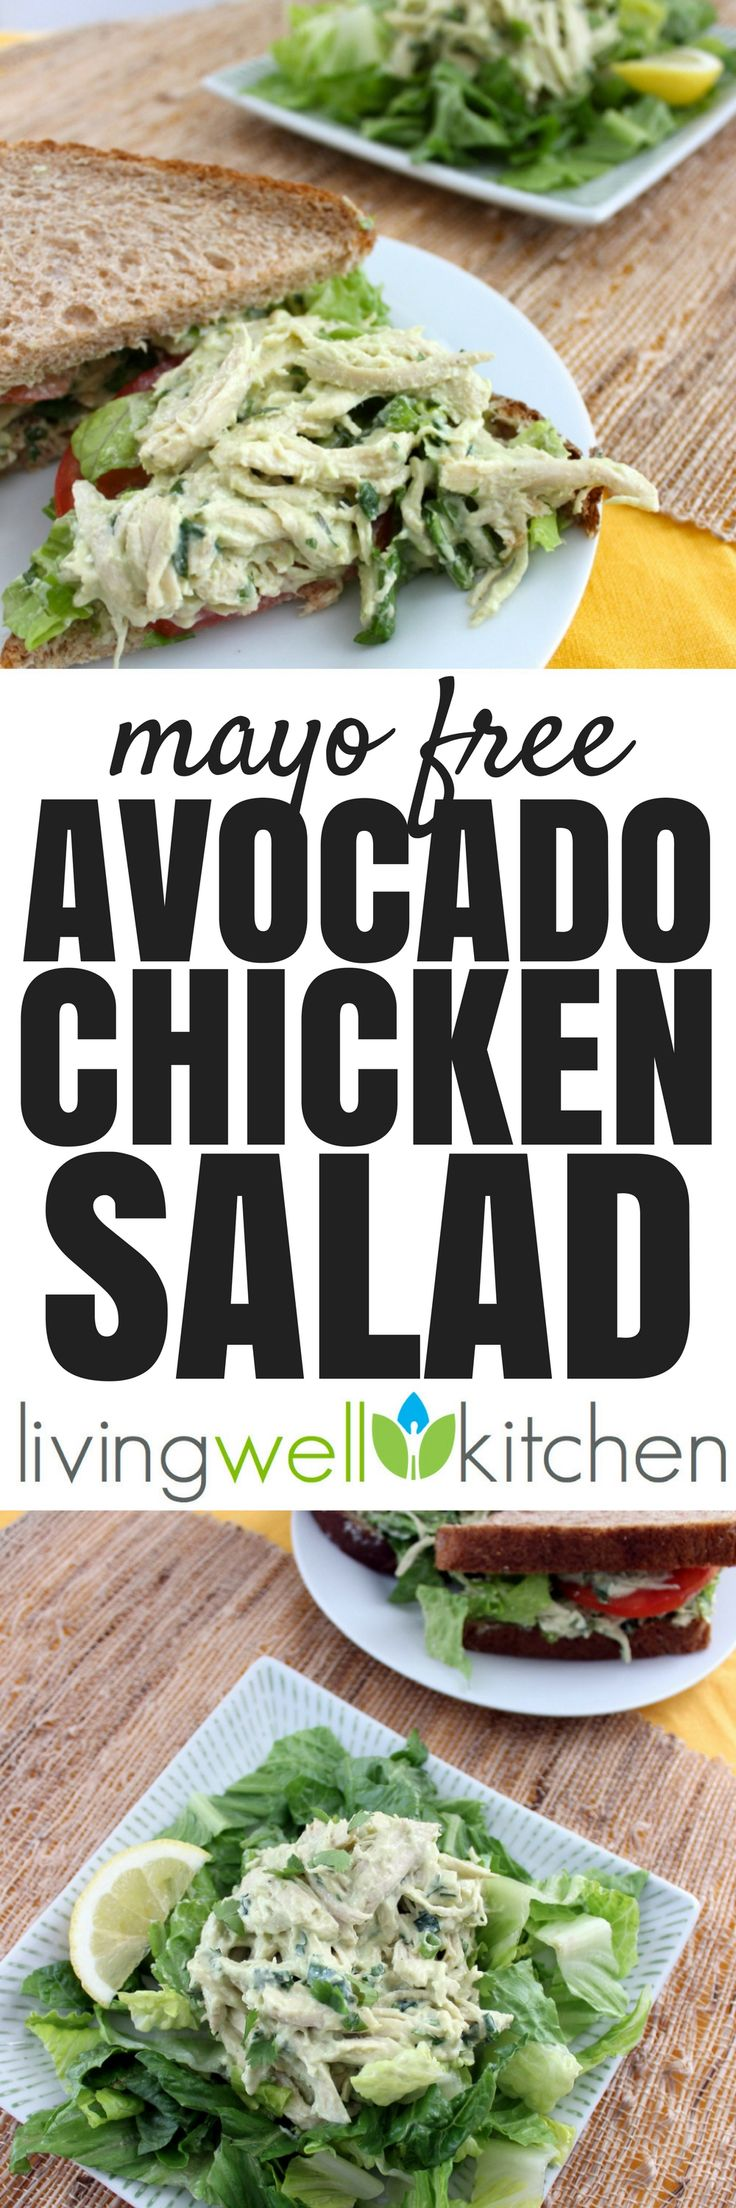 Avocado Chicken Salad recipe from @memeinge is a high protein chicken salad made without mayo. Nutritious and delicious, this is perfect for any main meal: lunch, snack, or light dinner. Healthy, gluten free